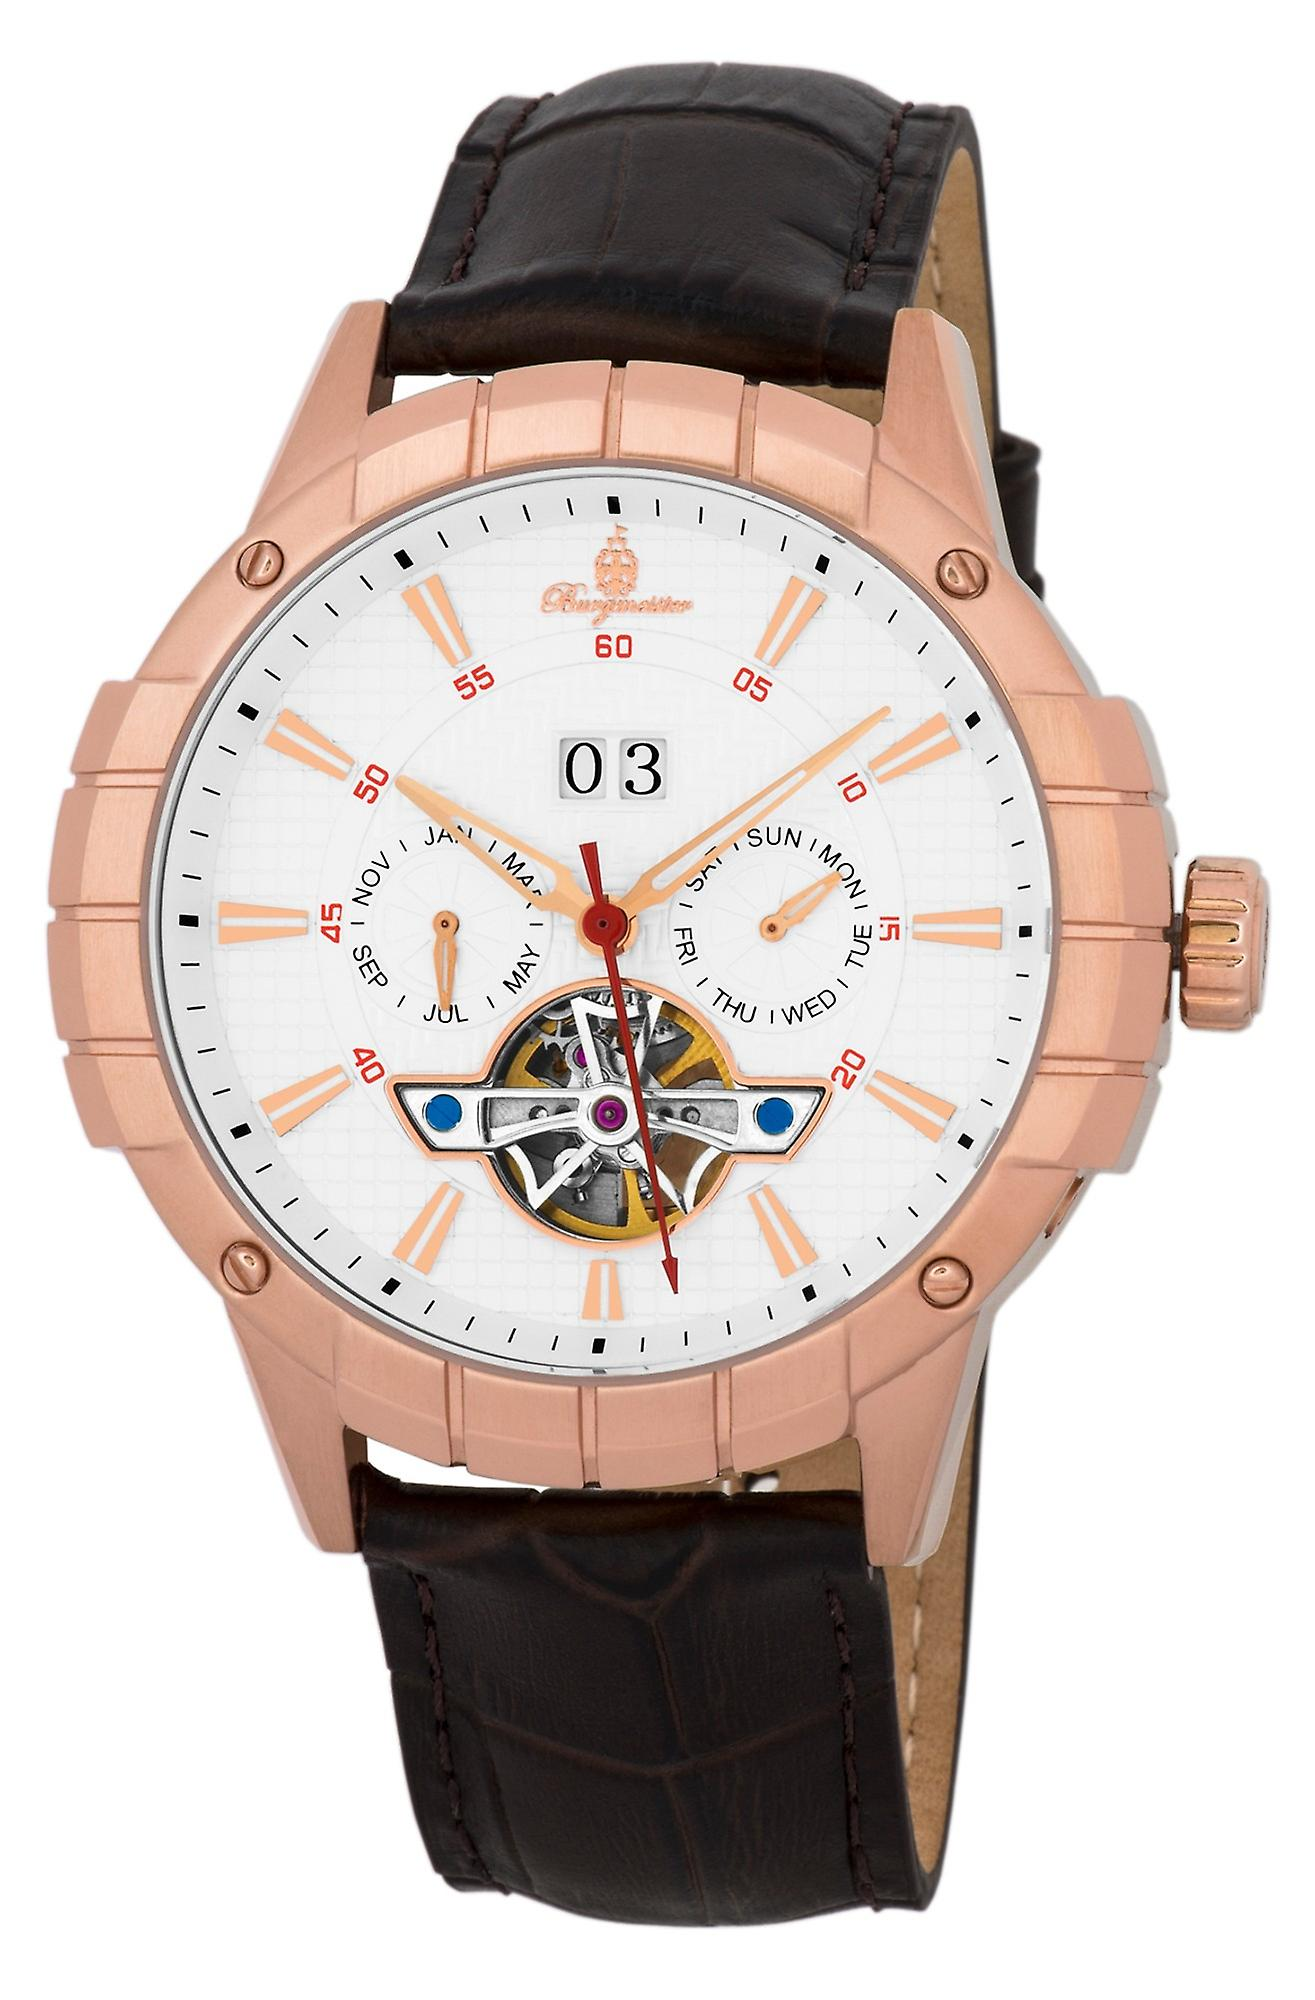 Burgmeister BM342-315 Palmdale, Gents automatic watch, Analogue display - Water resistant, Stylish leather strap, Classic men's watch